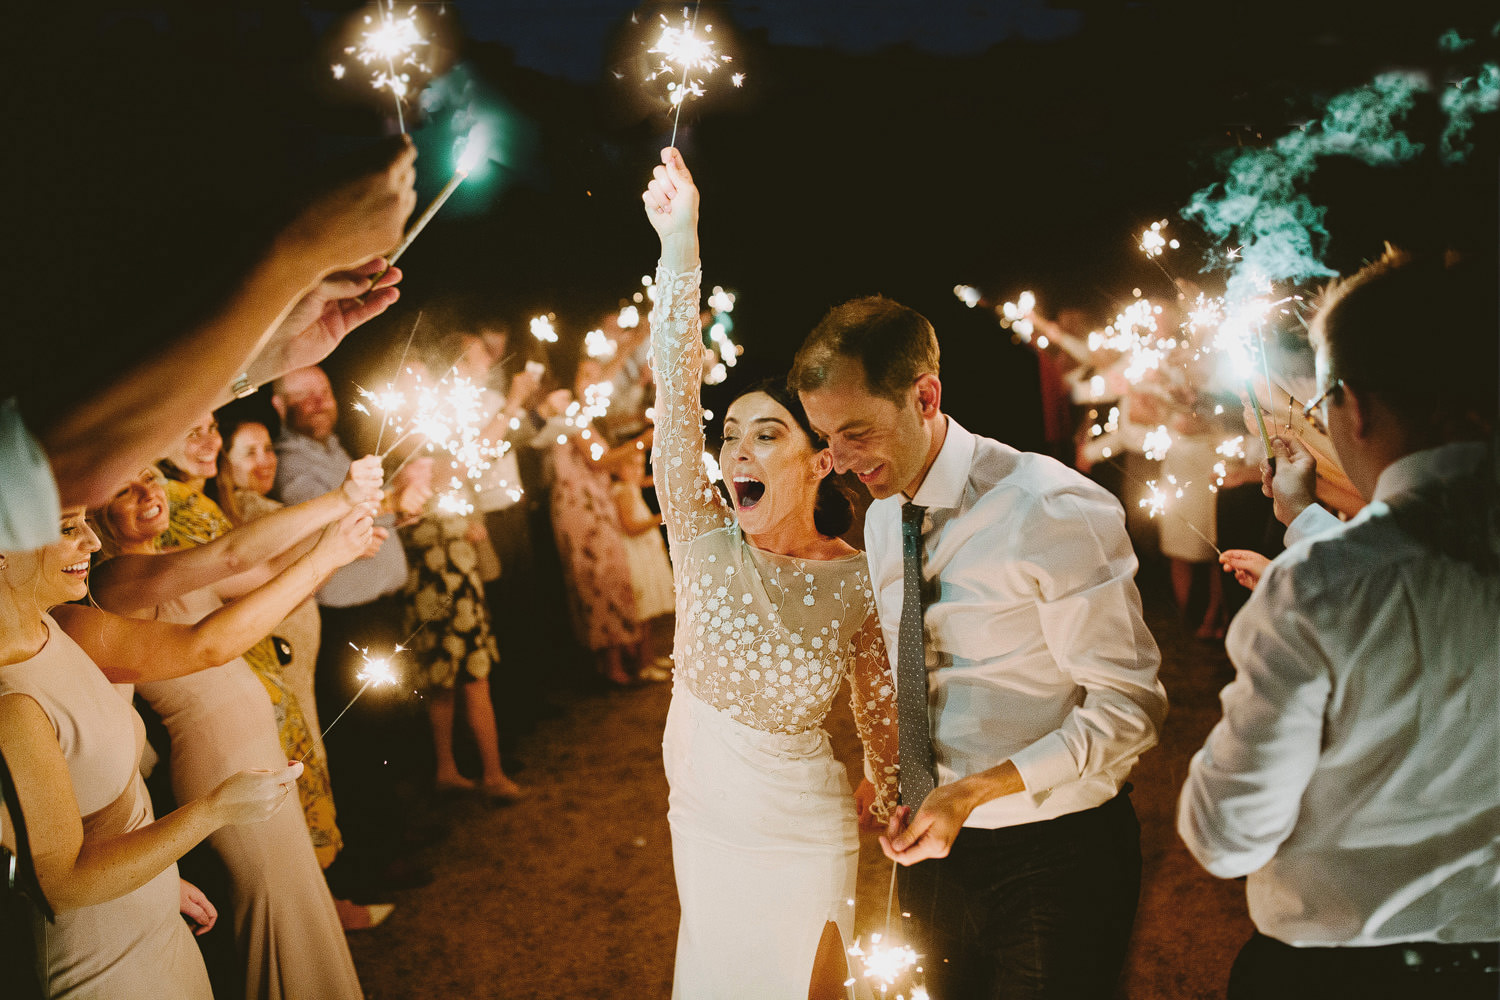 Bride celebrates with a sparkler above her head at night surrounded by friends